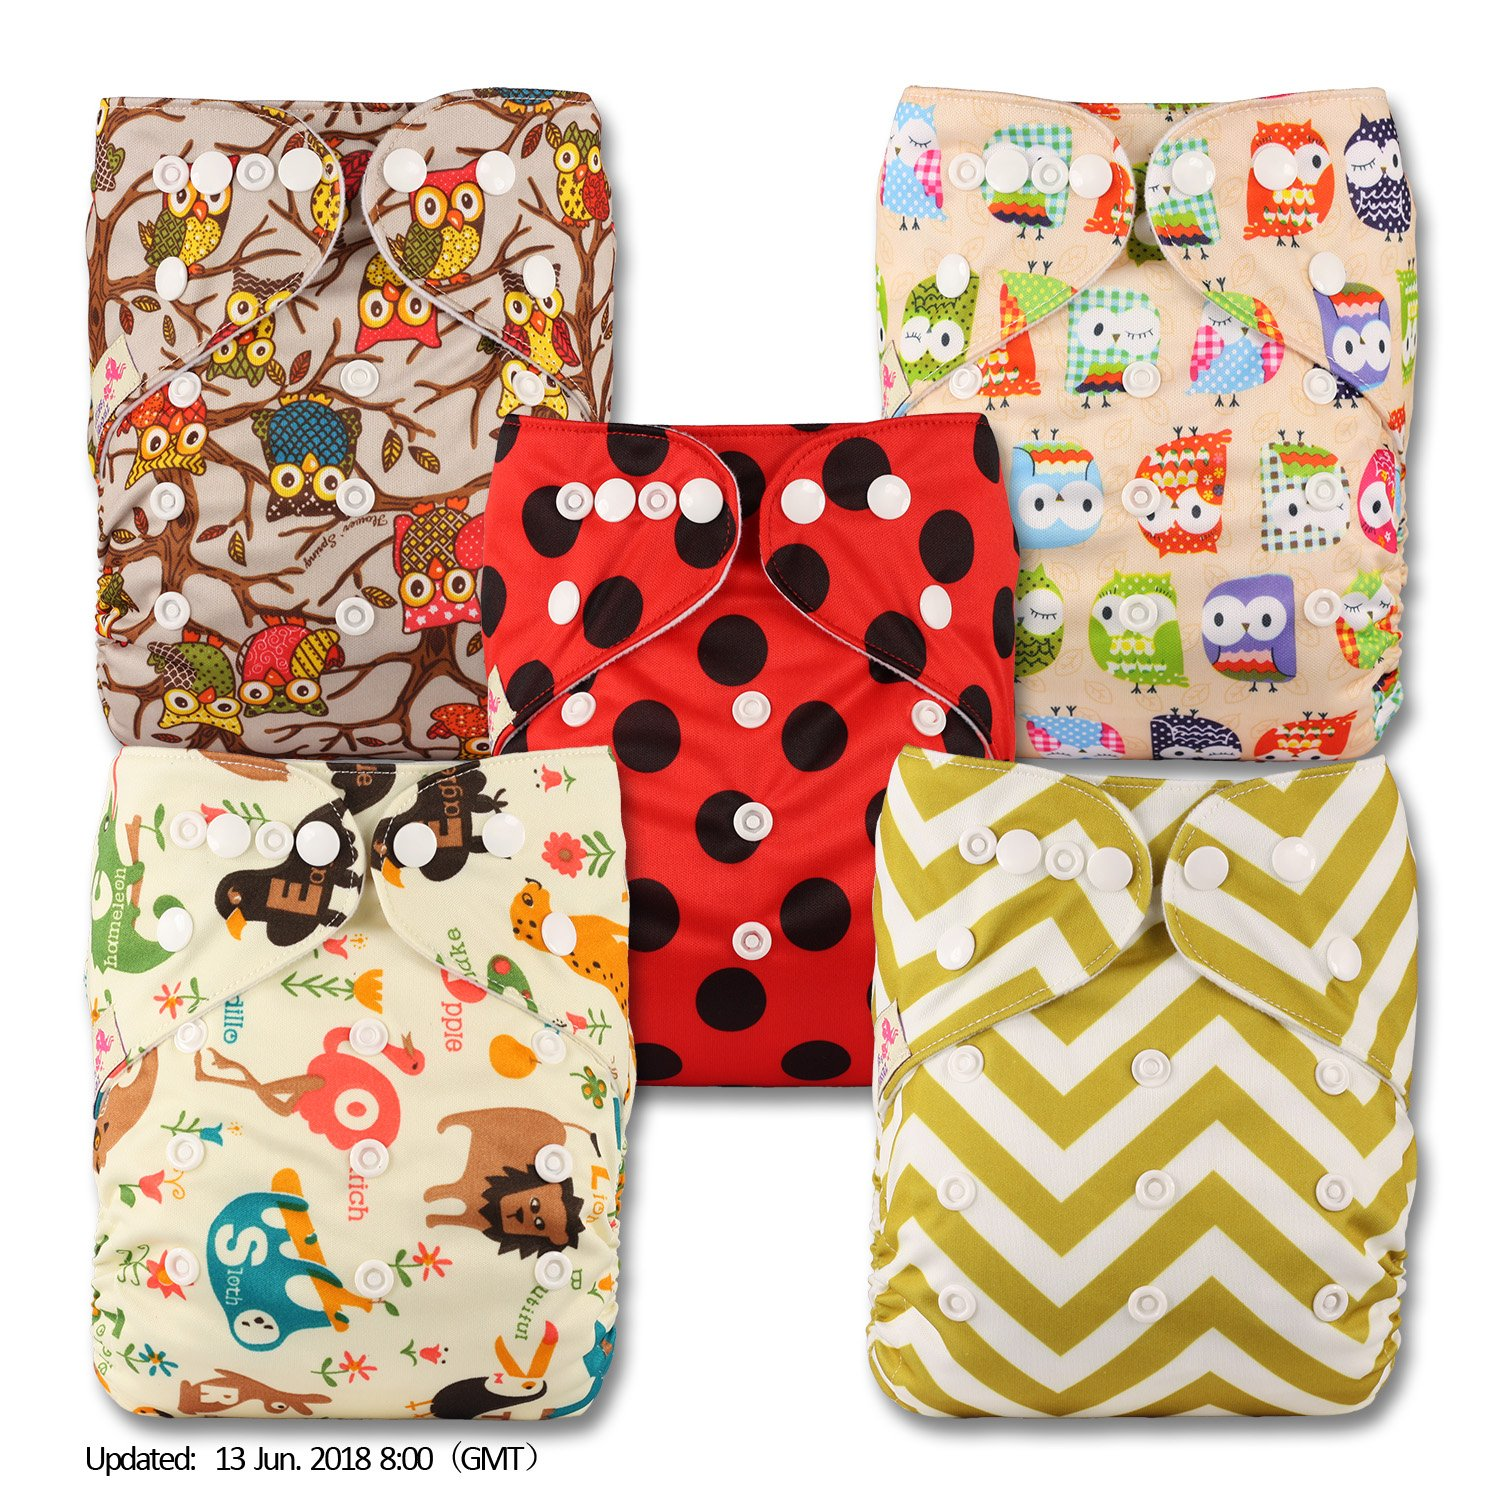 Fastener: Popper Set of 5 Patterns 509 Reusable Pocket Cloth Nappy Without Insert Littles /& Bloomz